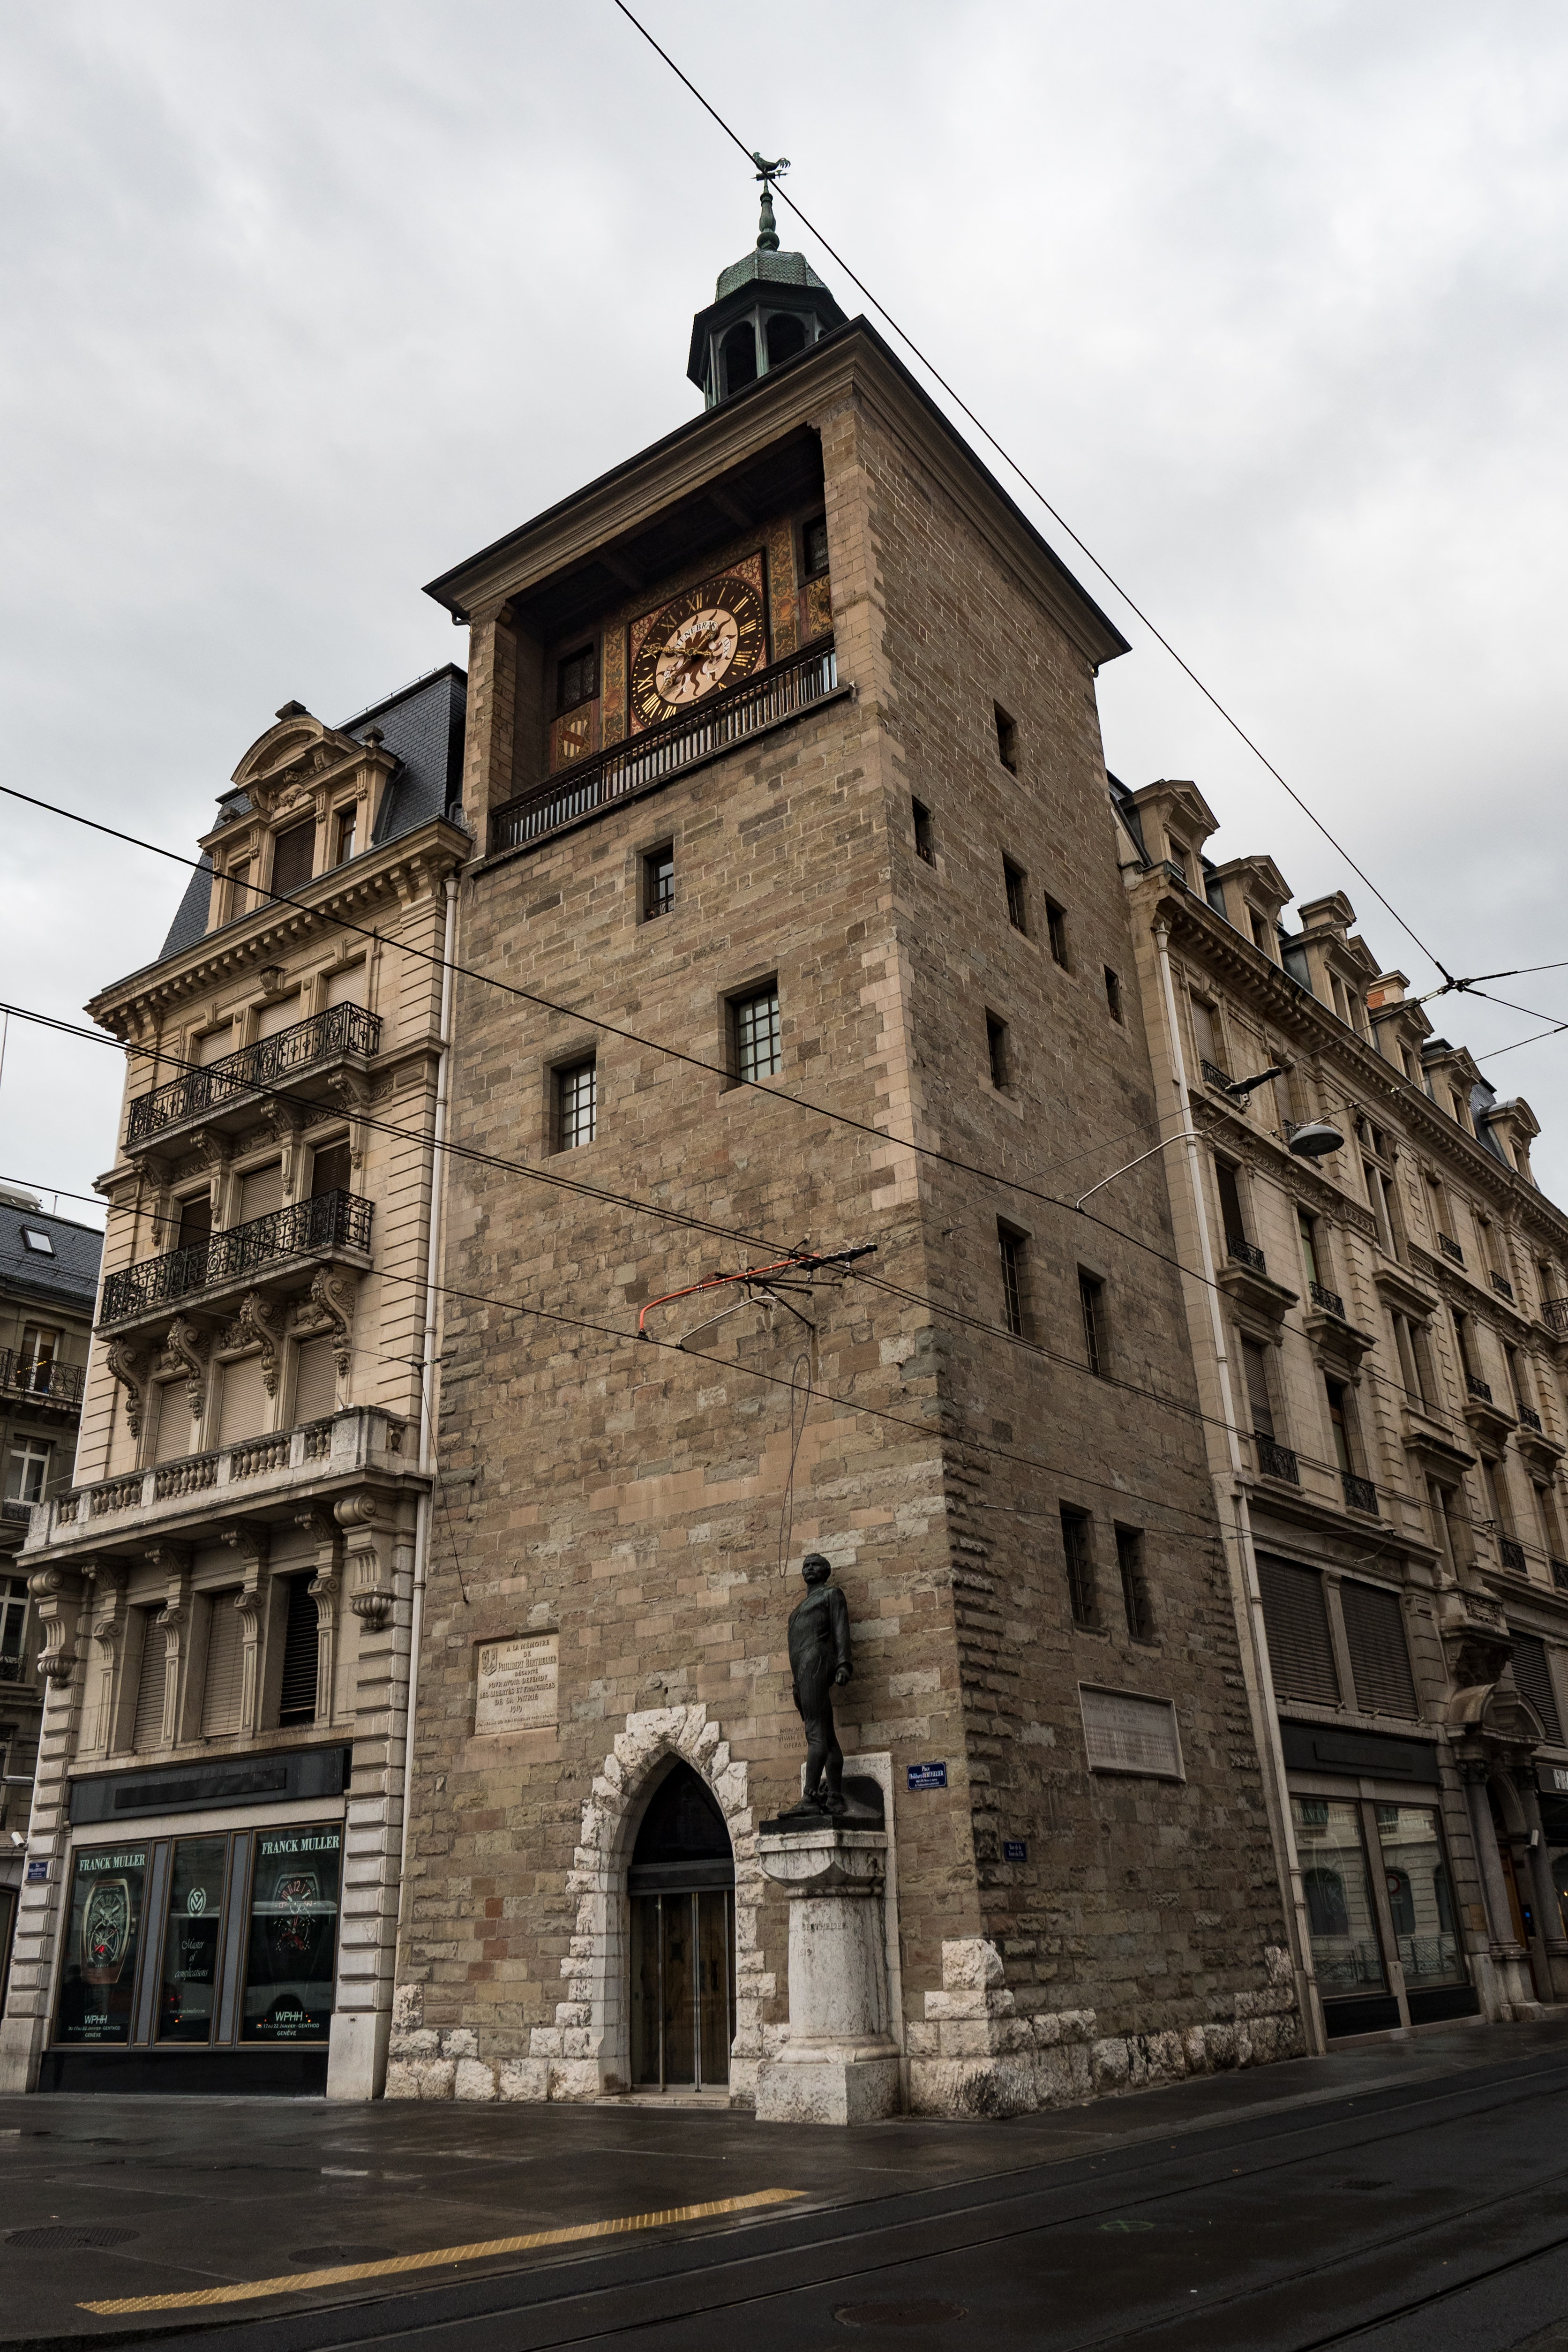 tour a l'ile, tower and clock, Geneva Dispatches: Public Clocks And Sundials In Geneva (Including That Church Clock Rolex Has Been Winding For 77 Years) Dispatches: Public Clocks And Sundials In Geneva (Including That Church Clock Rolex Has Been Winding For 77 Years) PB043967